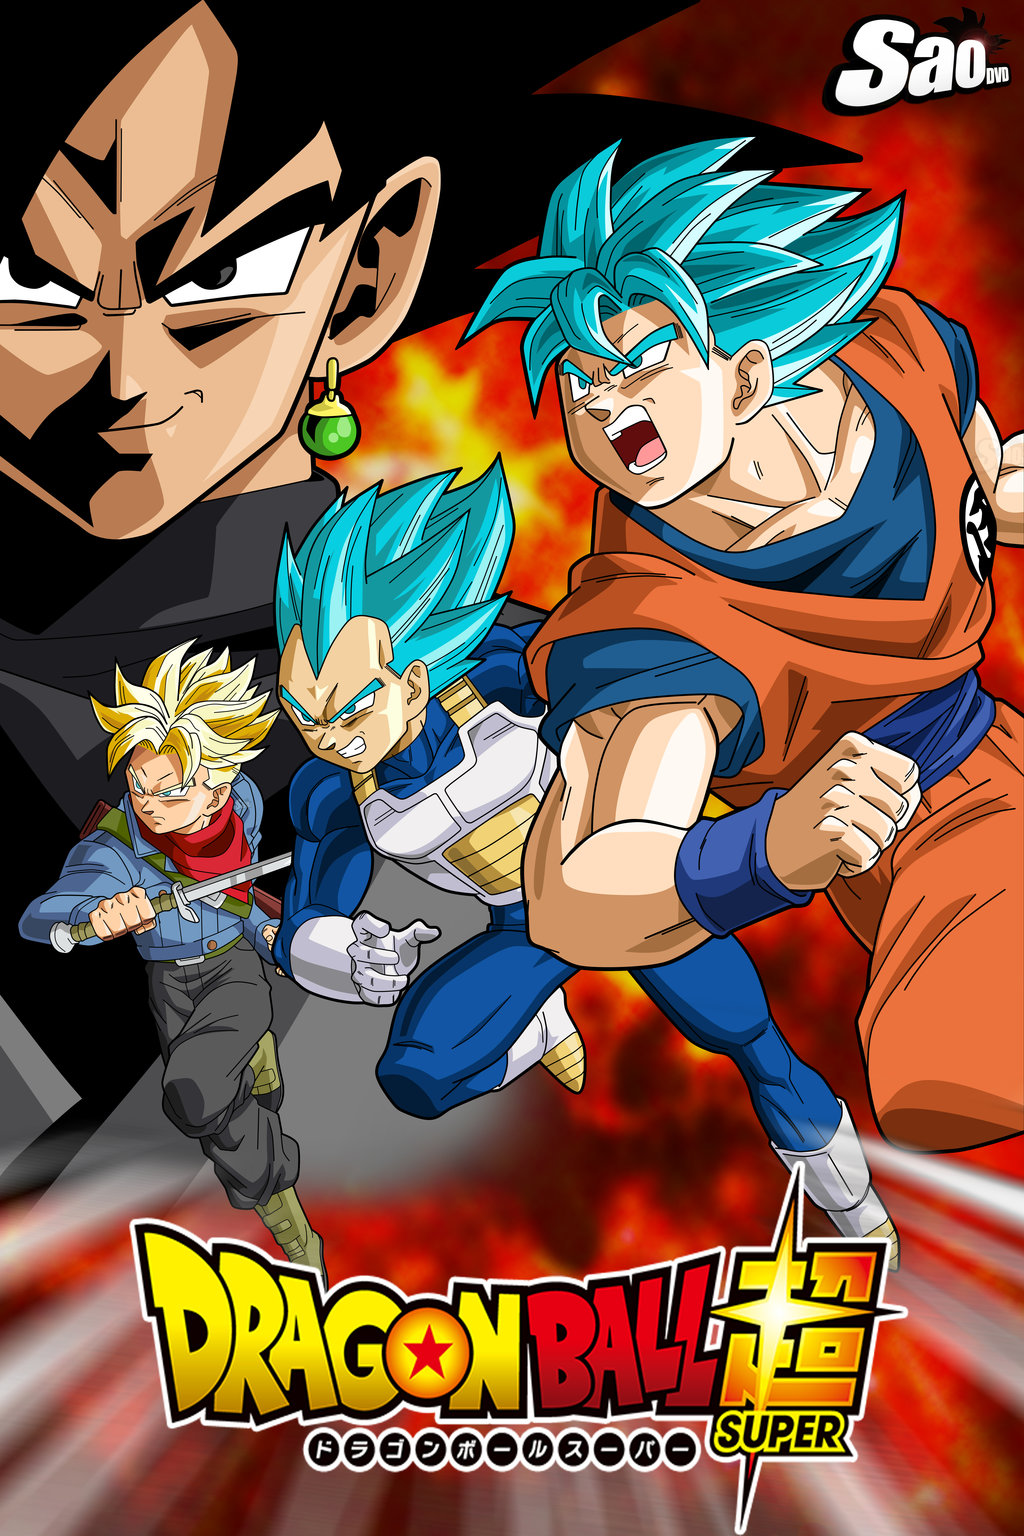 dragon_ball_super_saga_black_by_saodvd-daesxzp